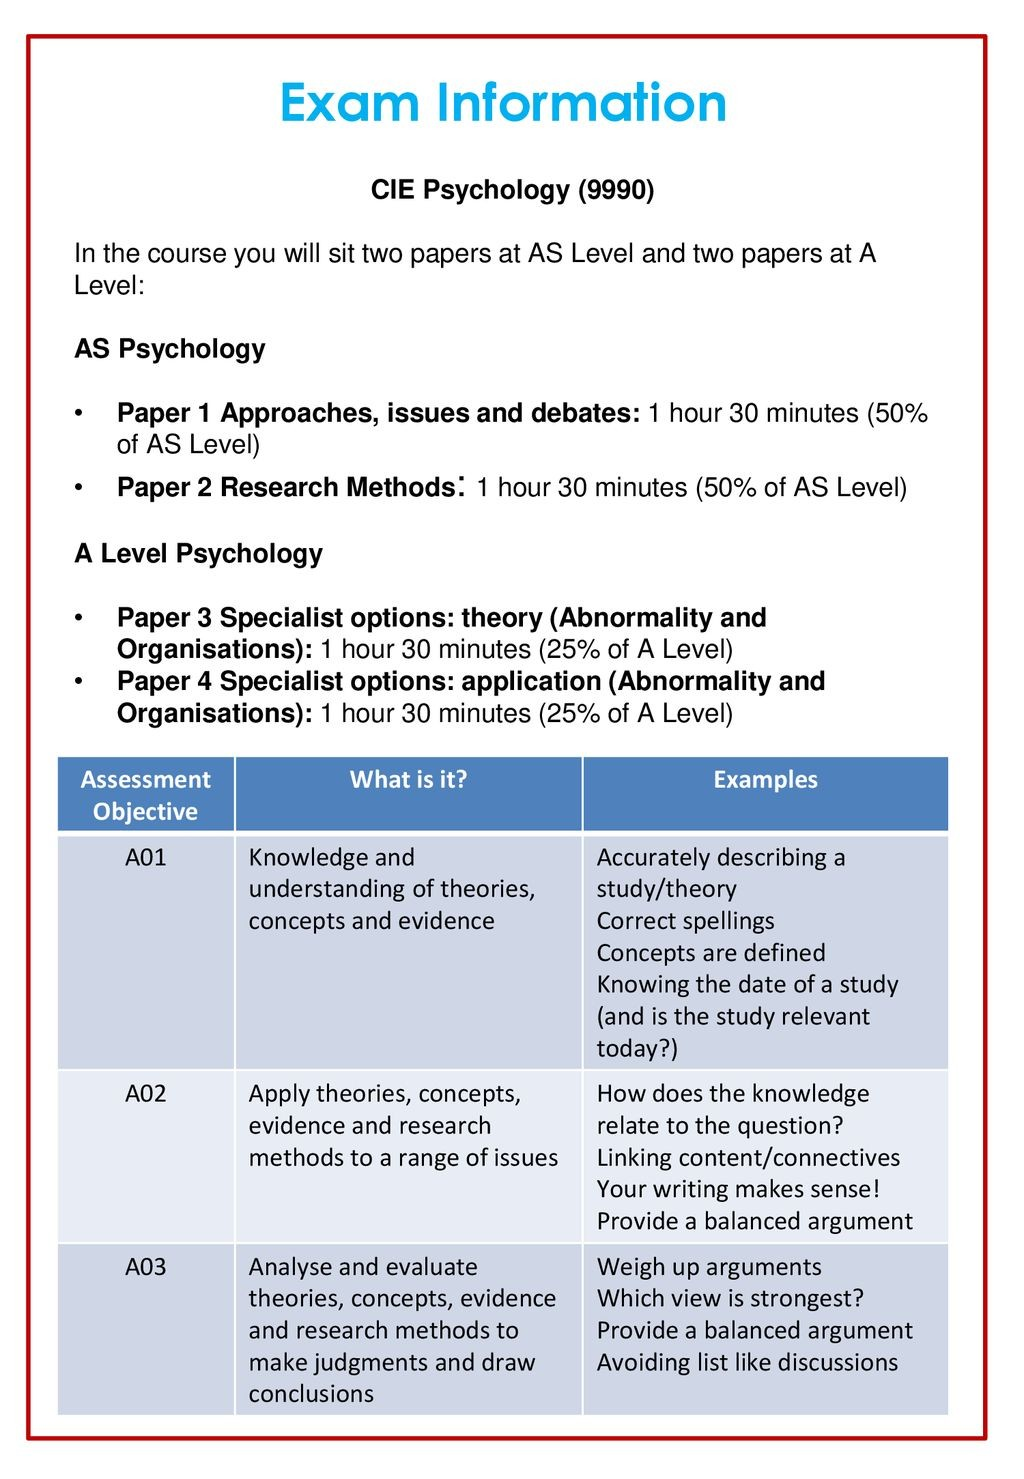 007 Examinformationciepsychology28999029 Research Paper Methods Exceptional 1 Psychology Large